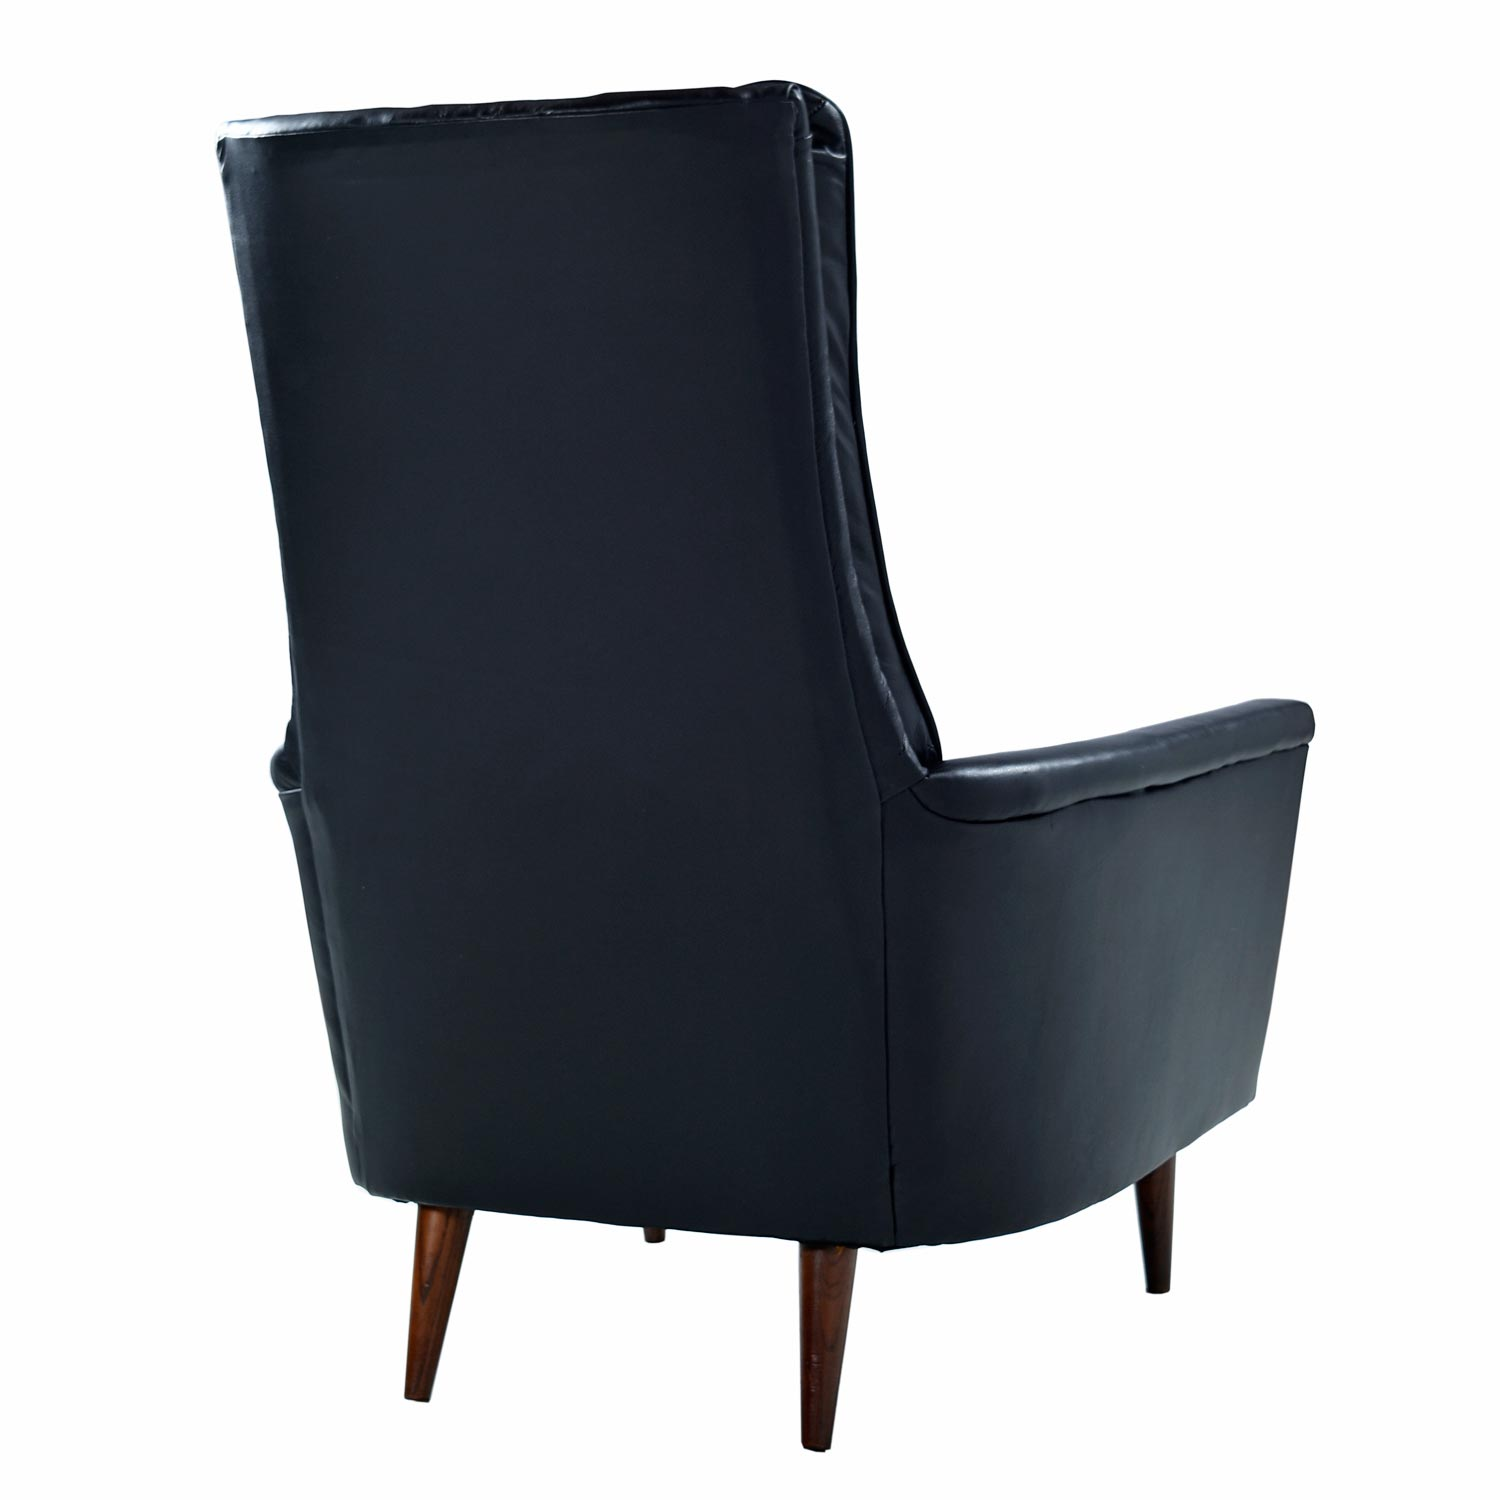 high back tufted chair orange computer restored adrian pearsall style black leather lounge at 1stdibs